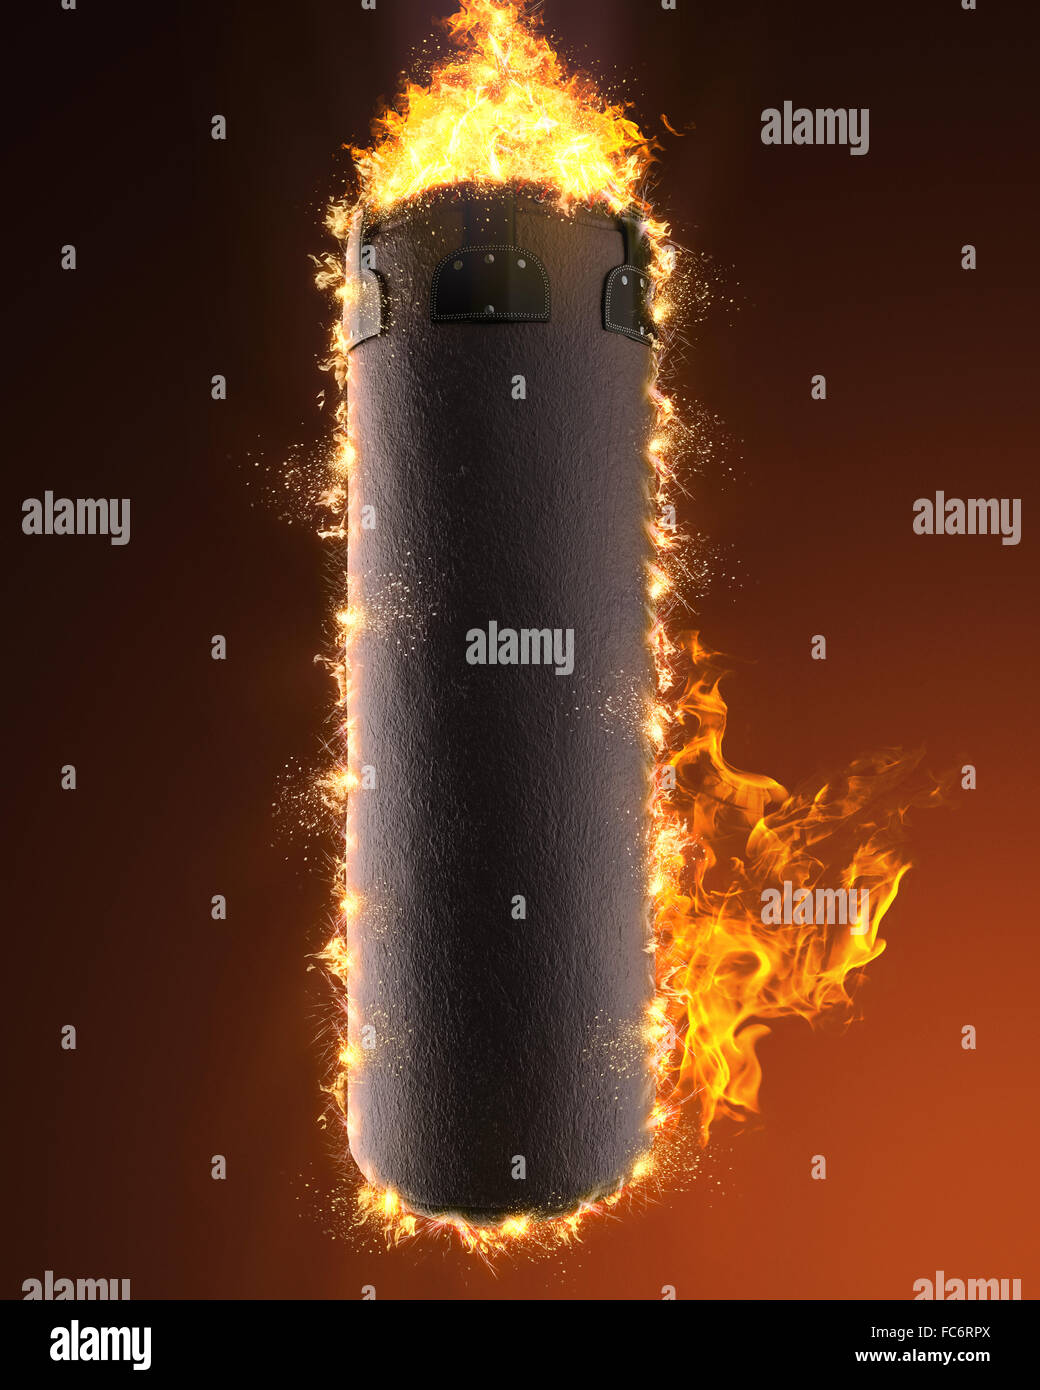 punching bag in fire - Stock Image